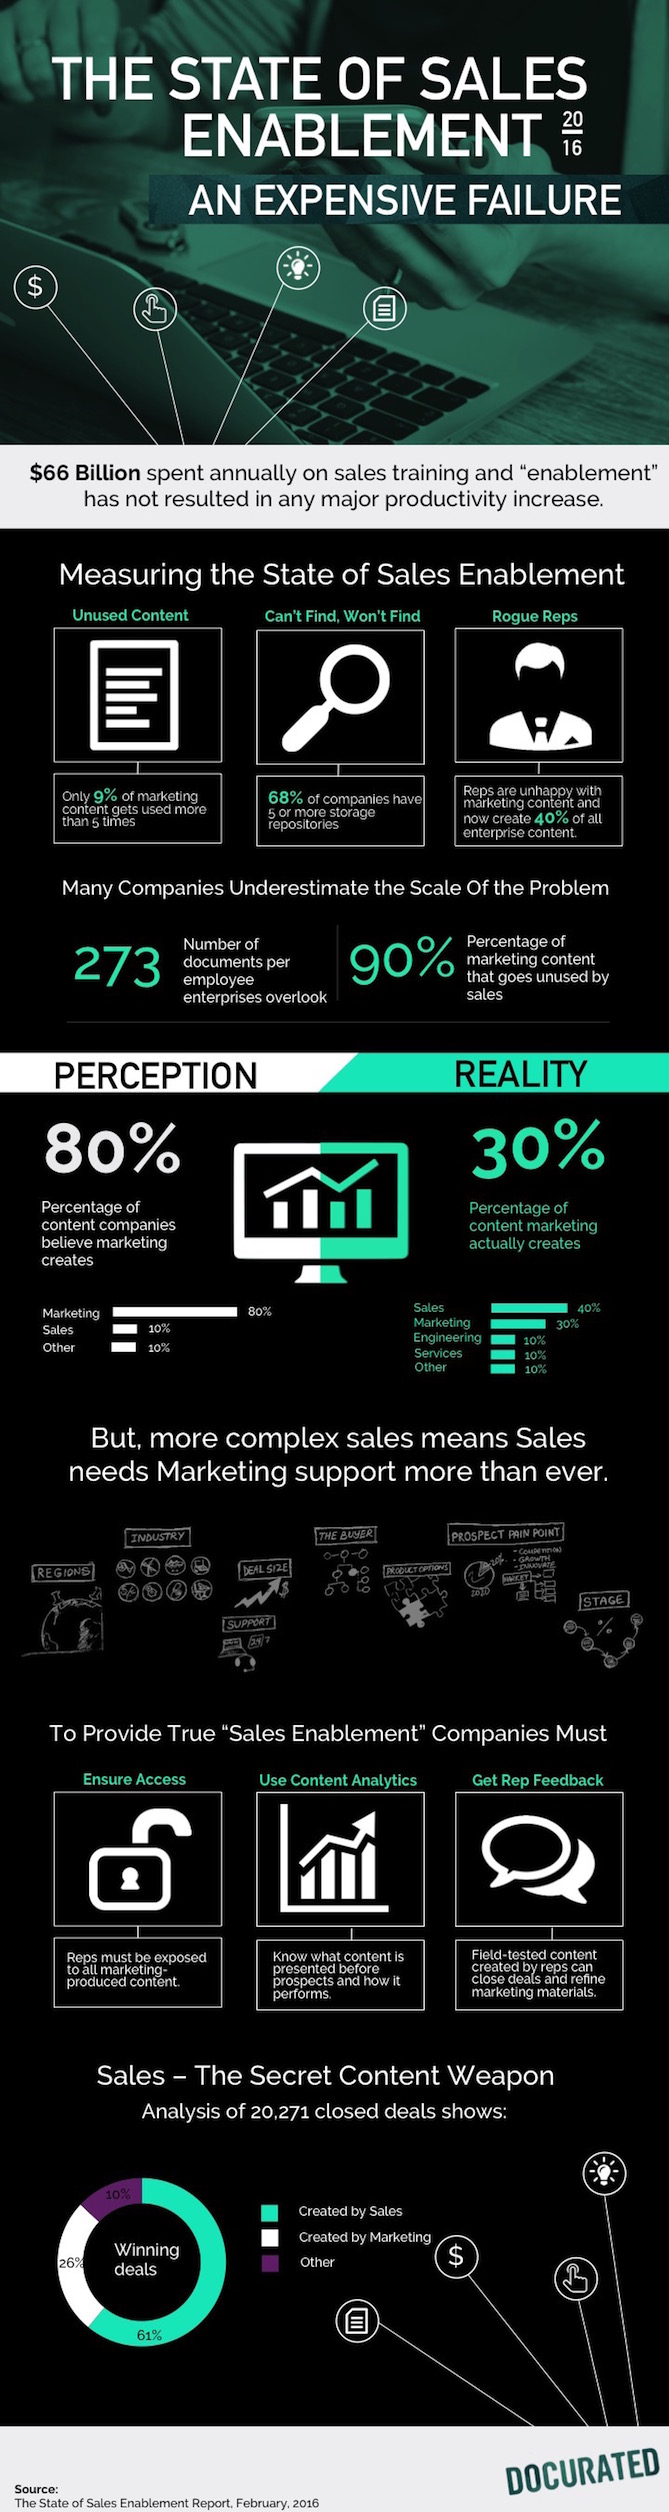 sales-enablement-report-final.jpg